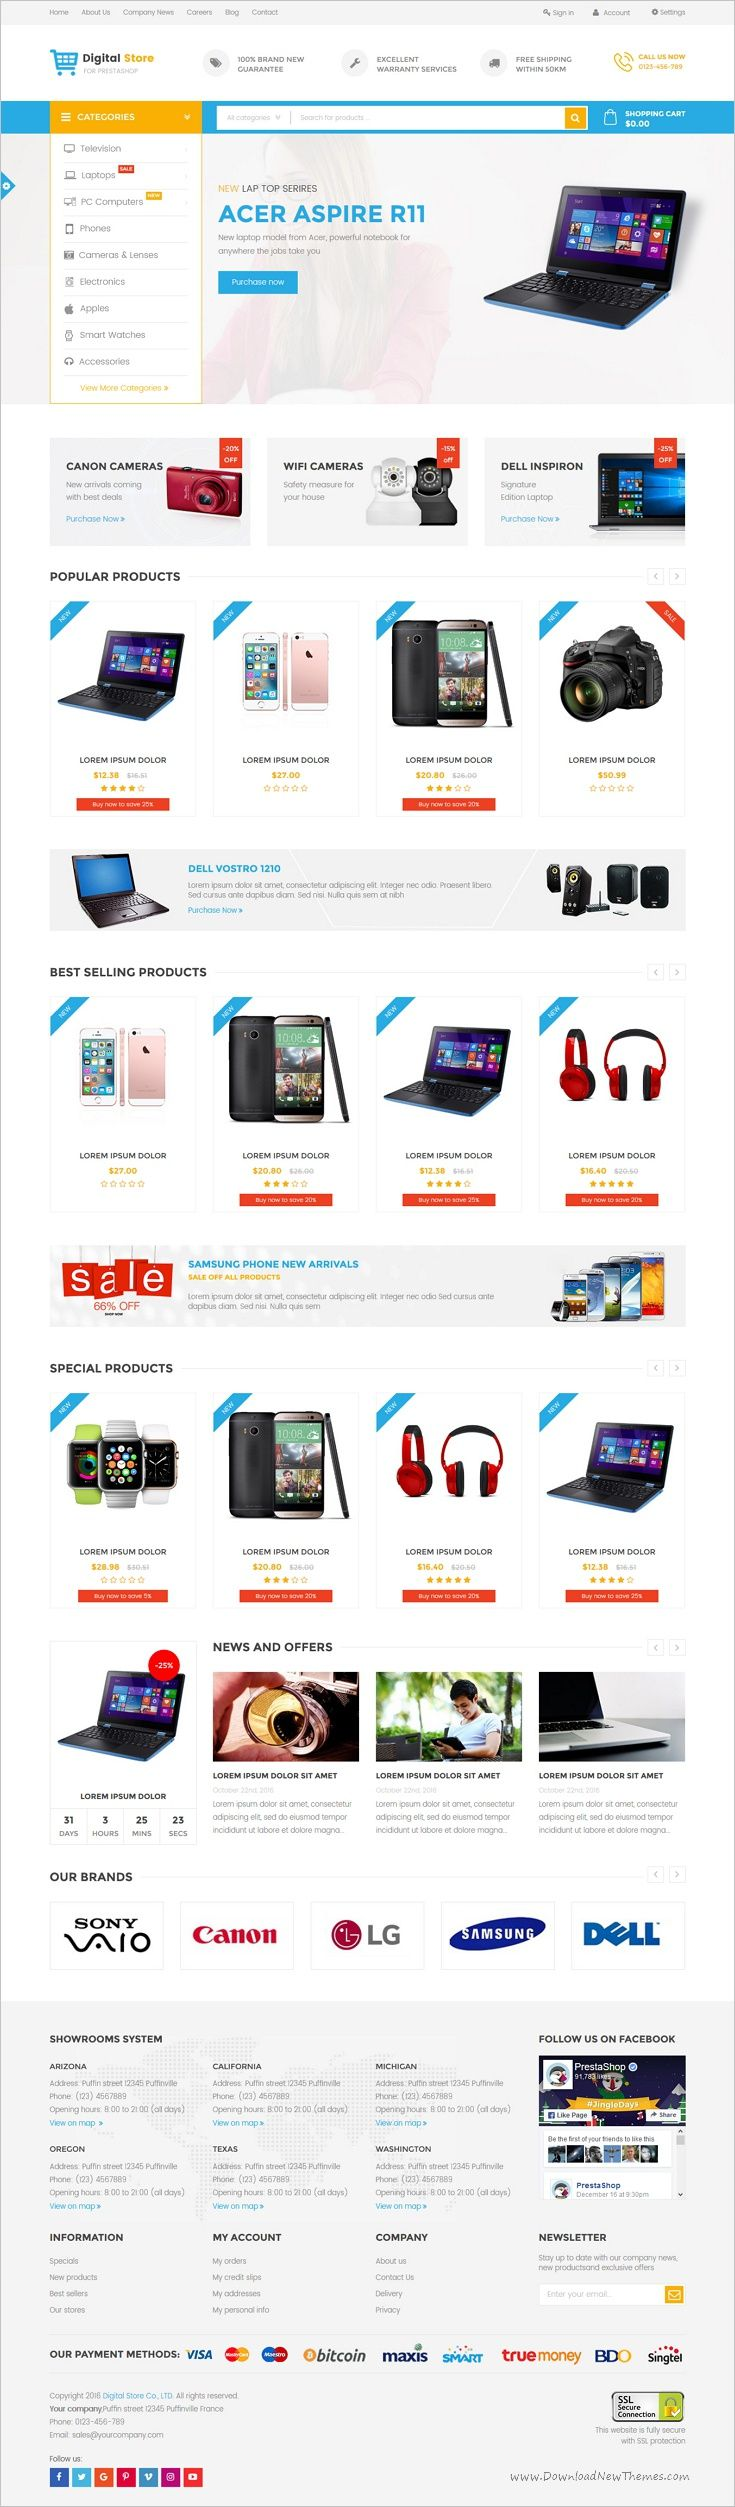 Digital store is a wonderful 6in1 #Prestashop theme for #electronics #shop stunning eCommerce website download now➩ https://themeforest.net/item/digital-store-specific-prestashop-theme-for-digital-electronics-phones-cameras-and-computers-st/18783537?ref=Datasata